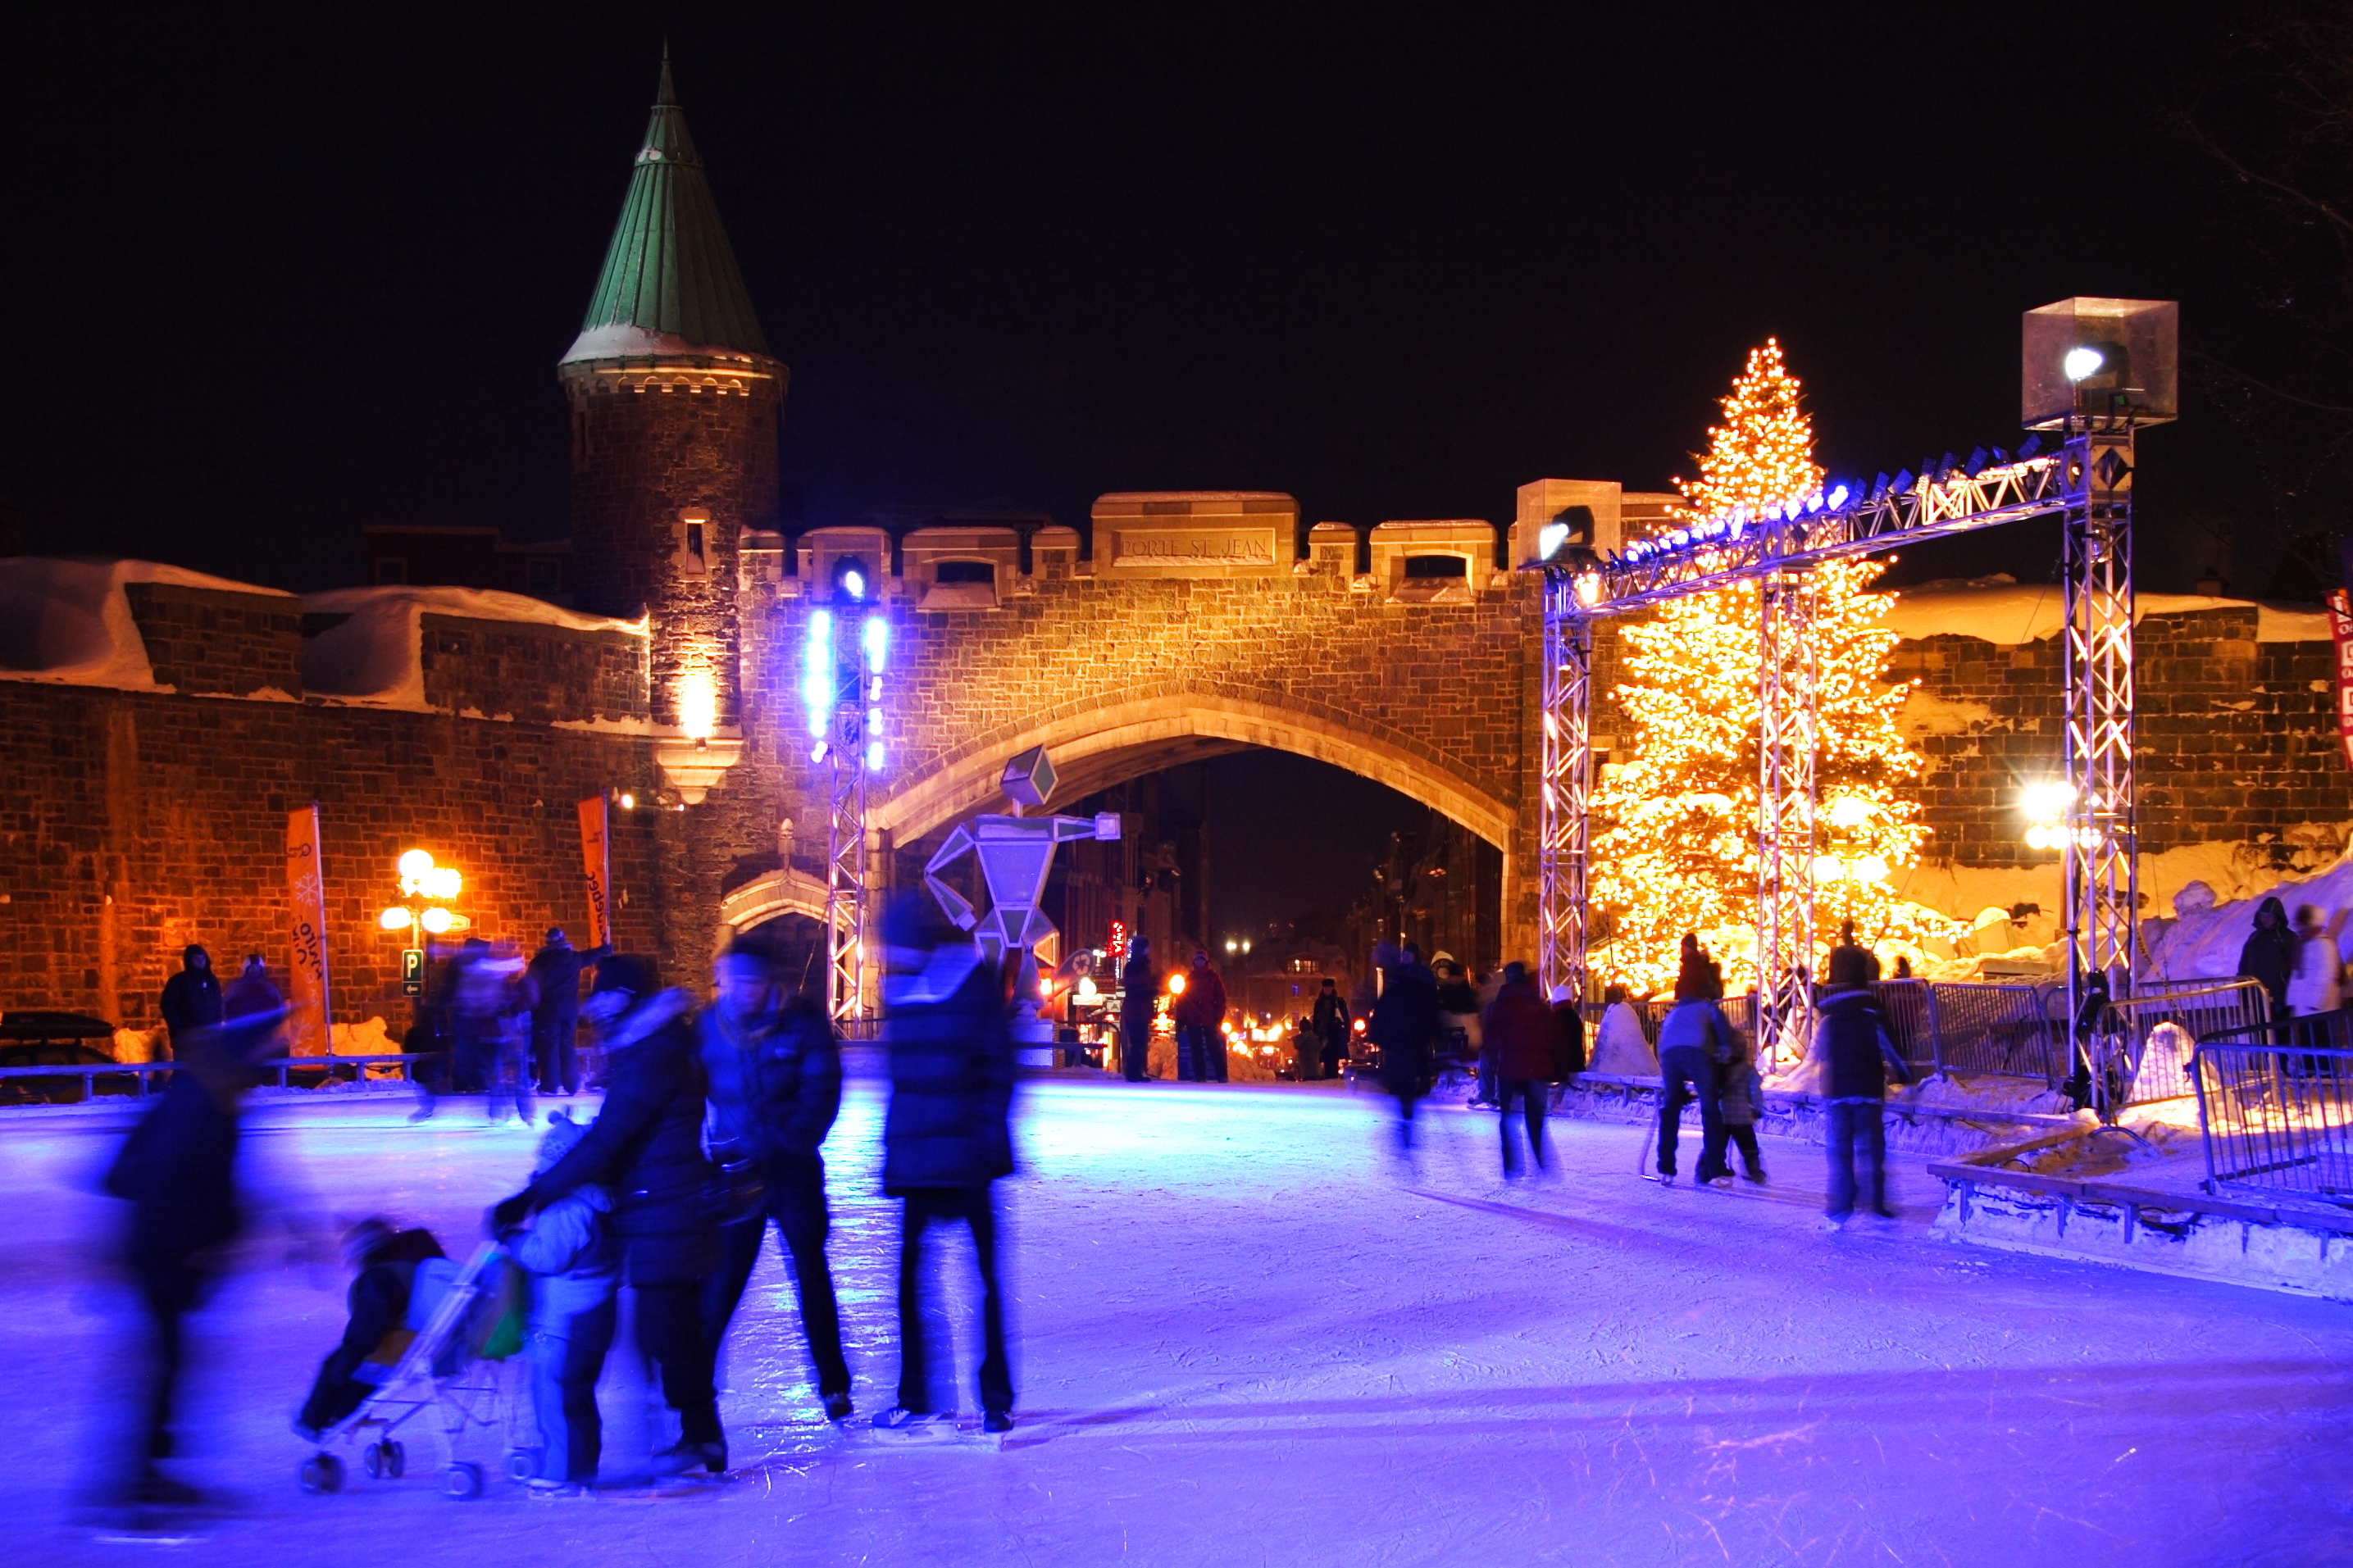 Quebec Winter Carnival via Shutterstock